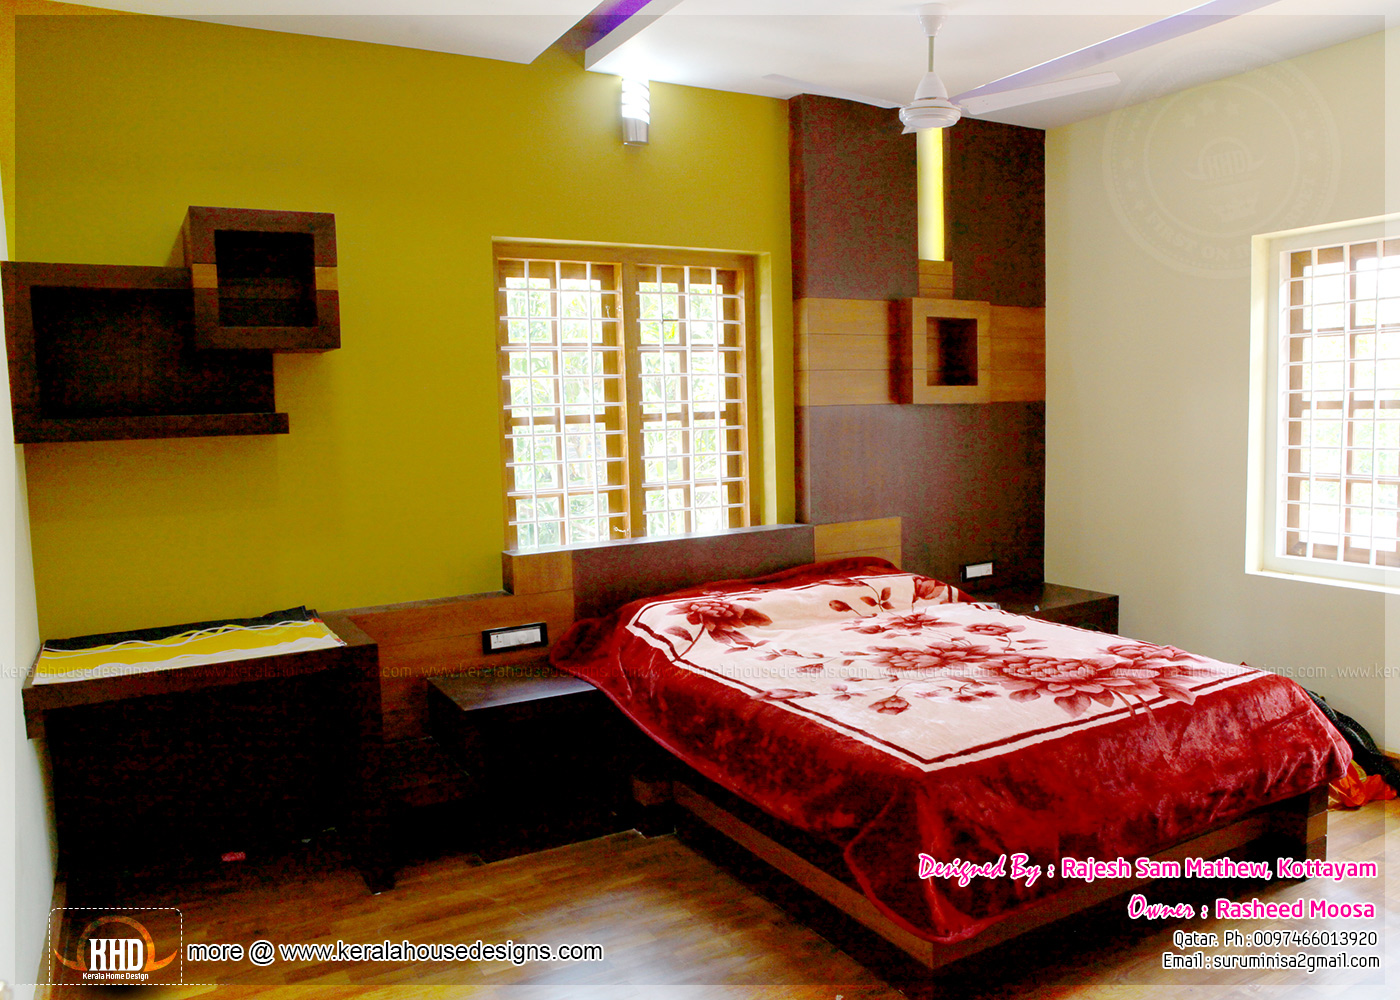 Kerala interior design with photos - Kerala home design and floor